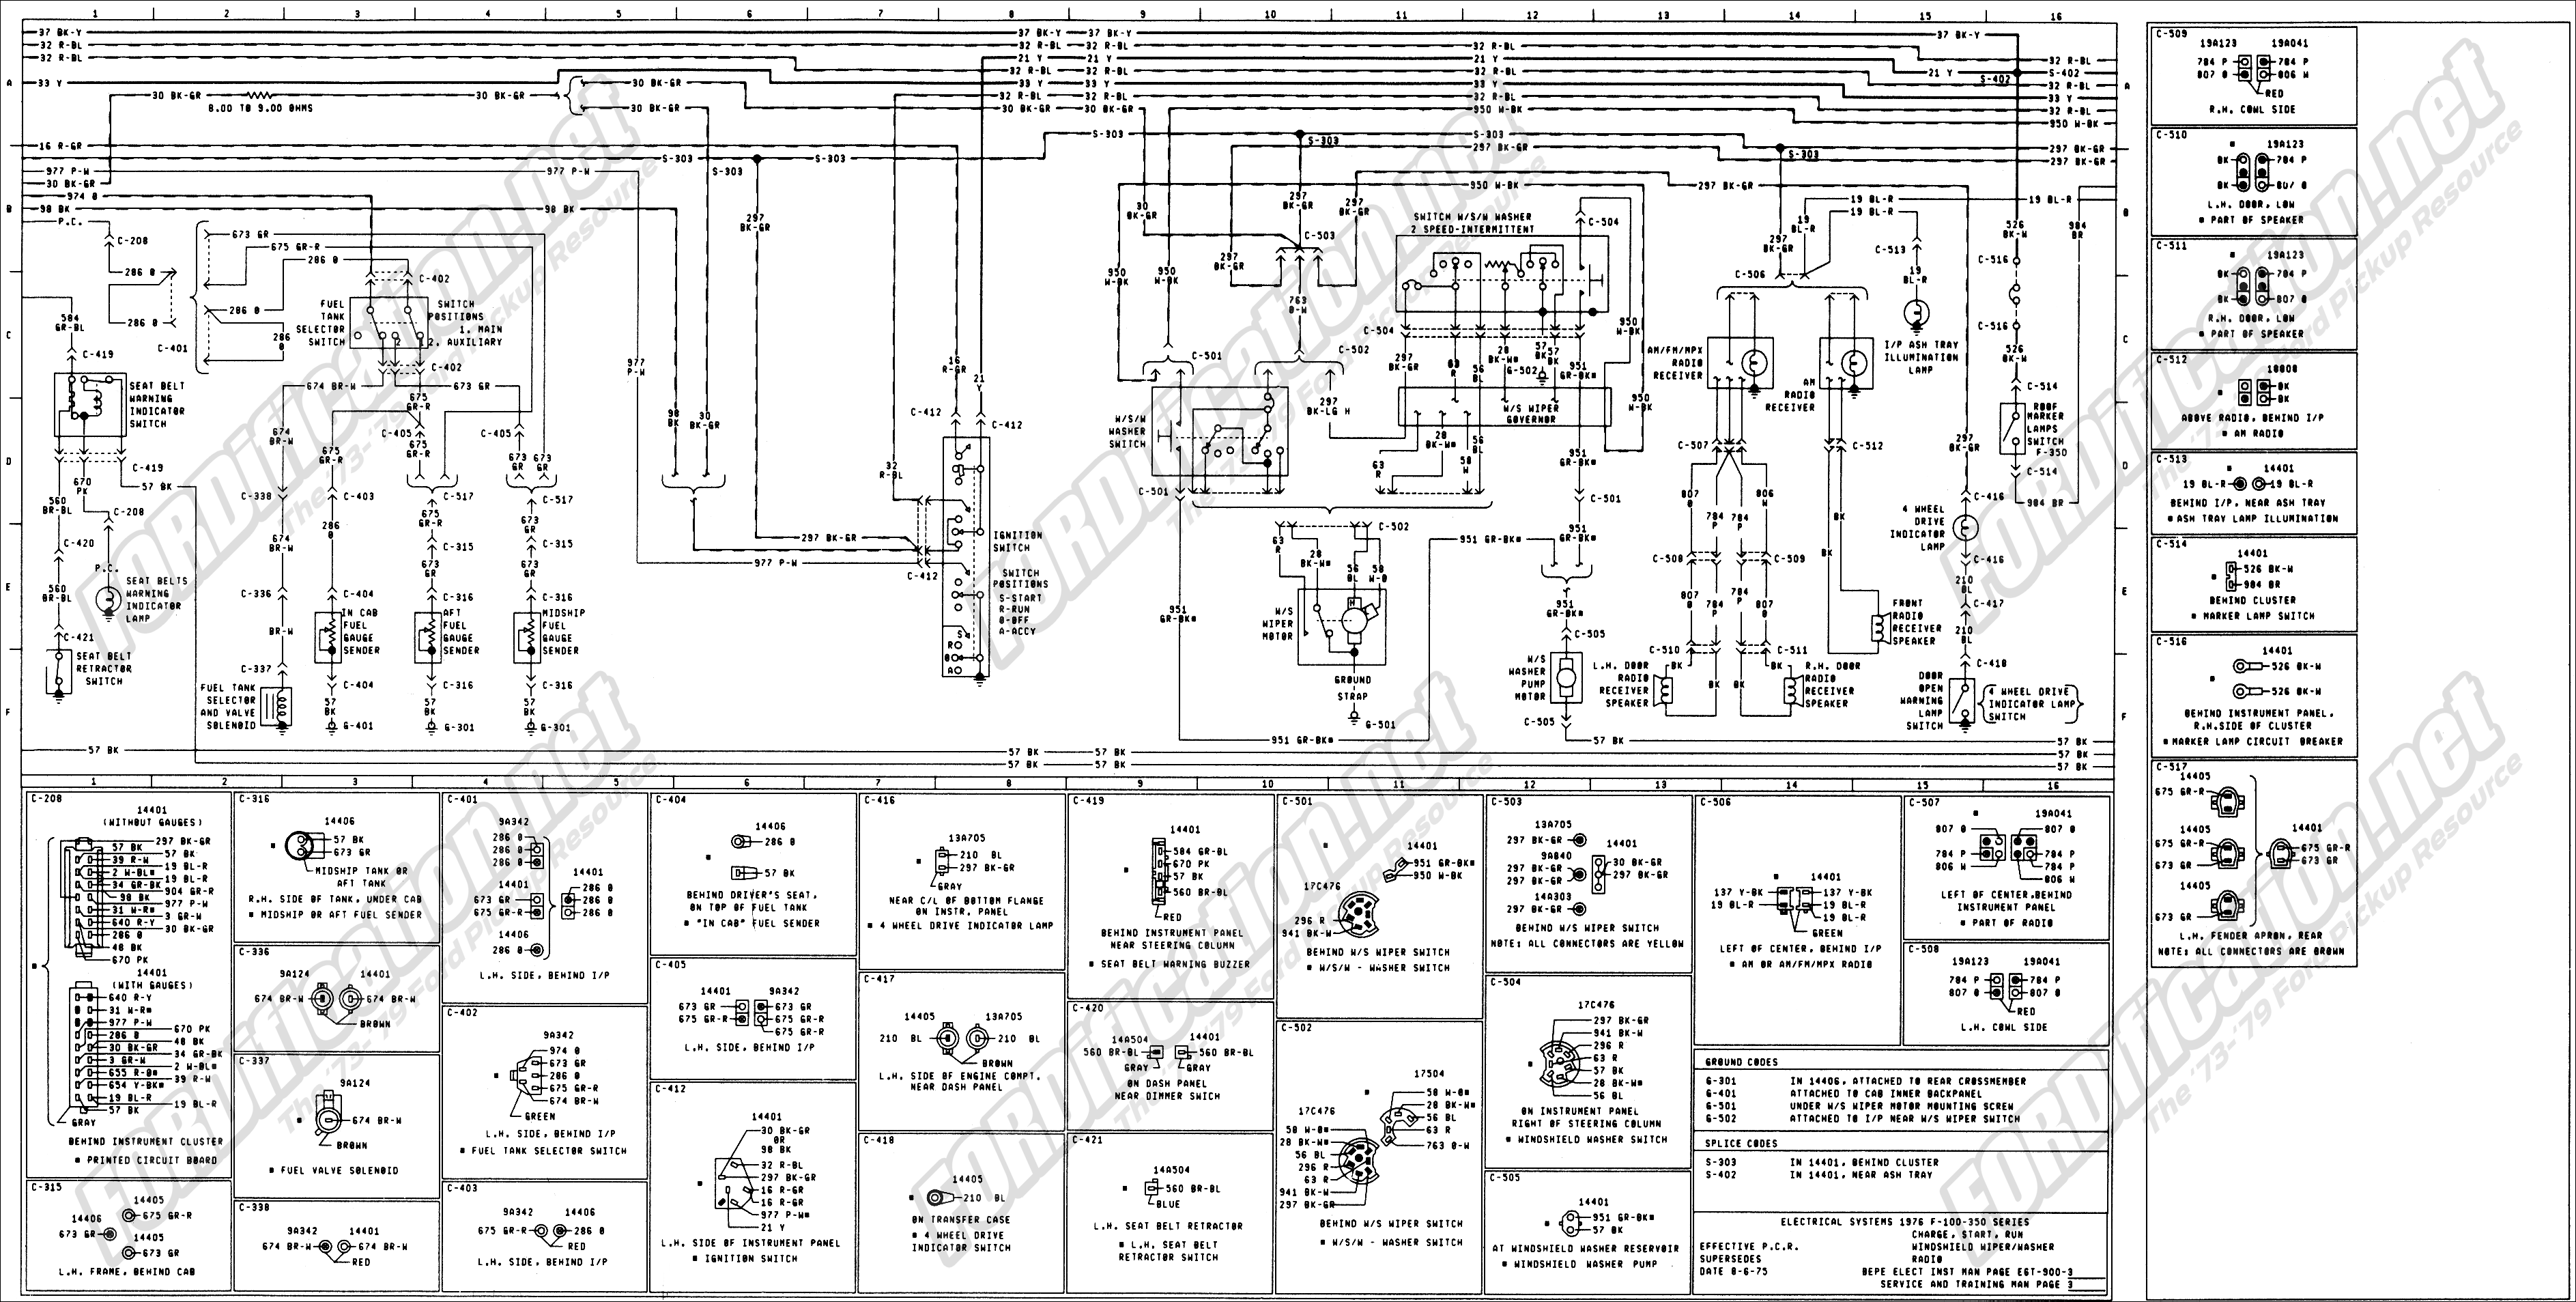 2005 Ford F150 4 6l Fuse Panel Diagram List Of Schematic Circuit 2001 F 150 Trailer Box Headlight Wiring Auto Electrical Rh Harvard Edu Co Uk Iico Me